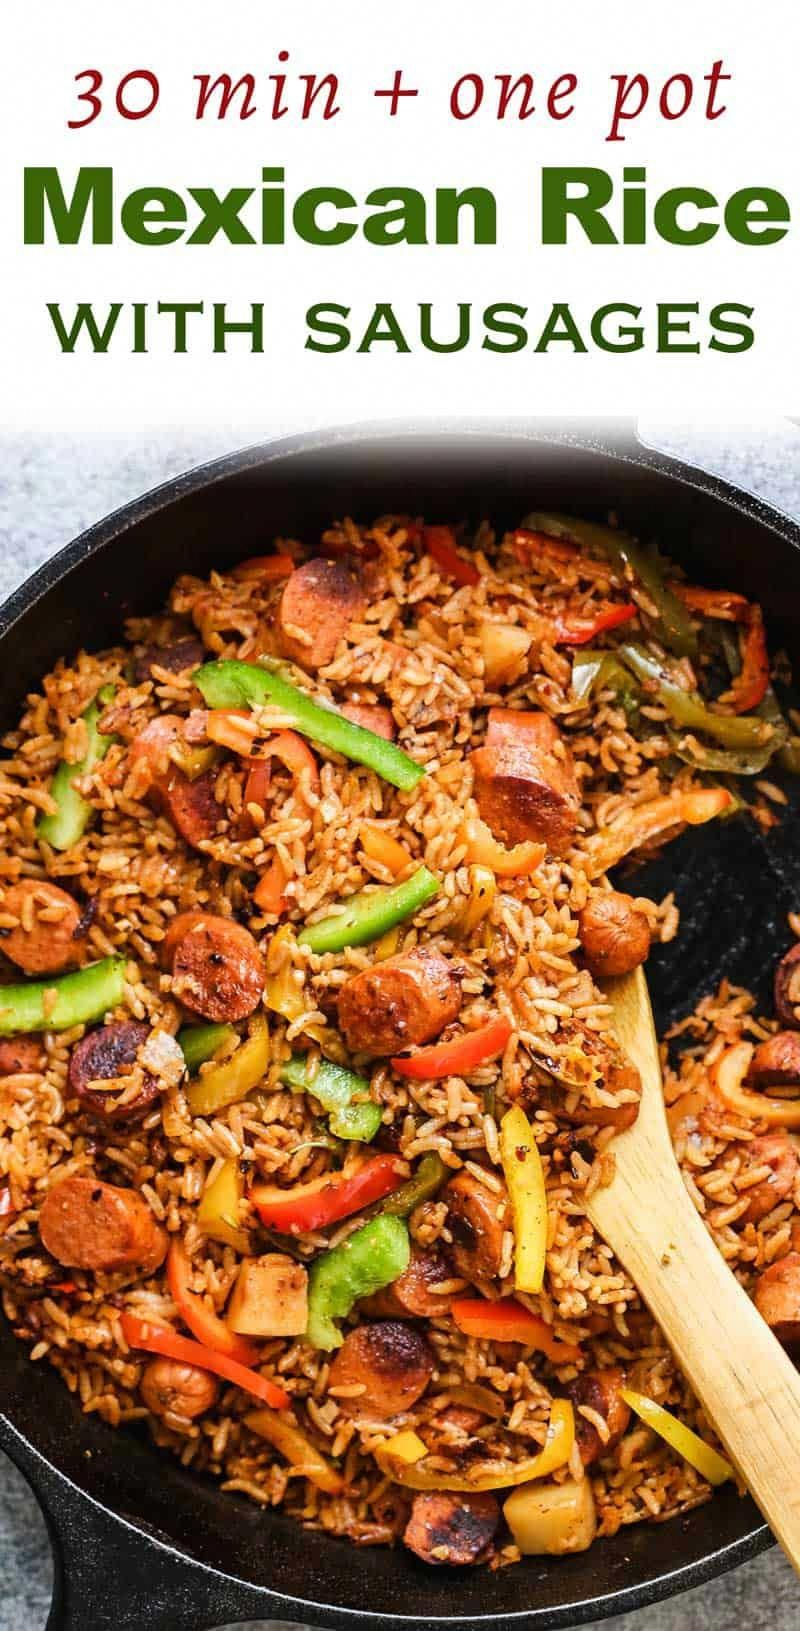 One Pot Mexican Rice and Sausages is a quick, 30 minute recipe that the entire family will love! Flavoured with oregano, chipotle, cumin and tossed with bell peppers, its a hearty meal thats so yum! via @my_foodstory